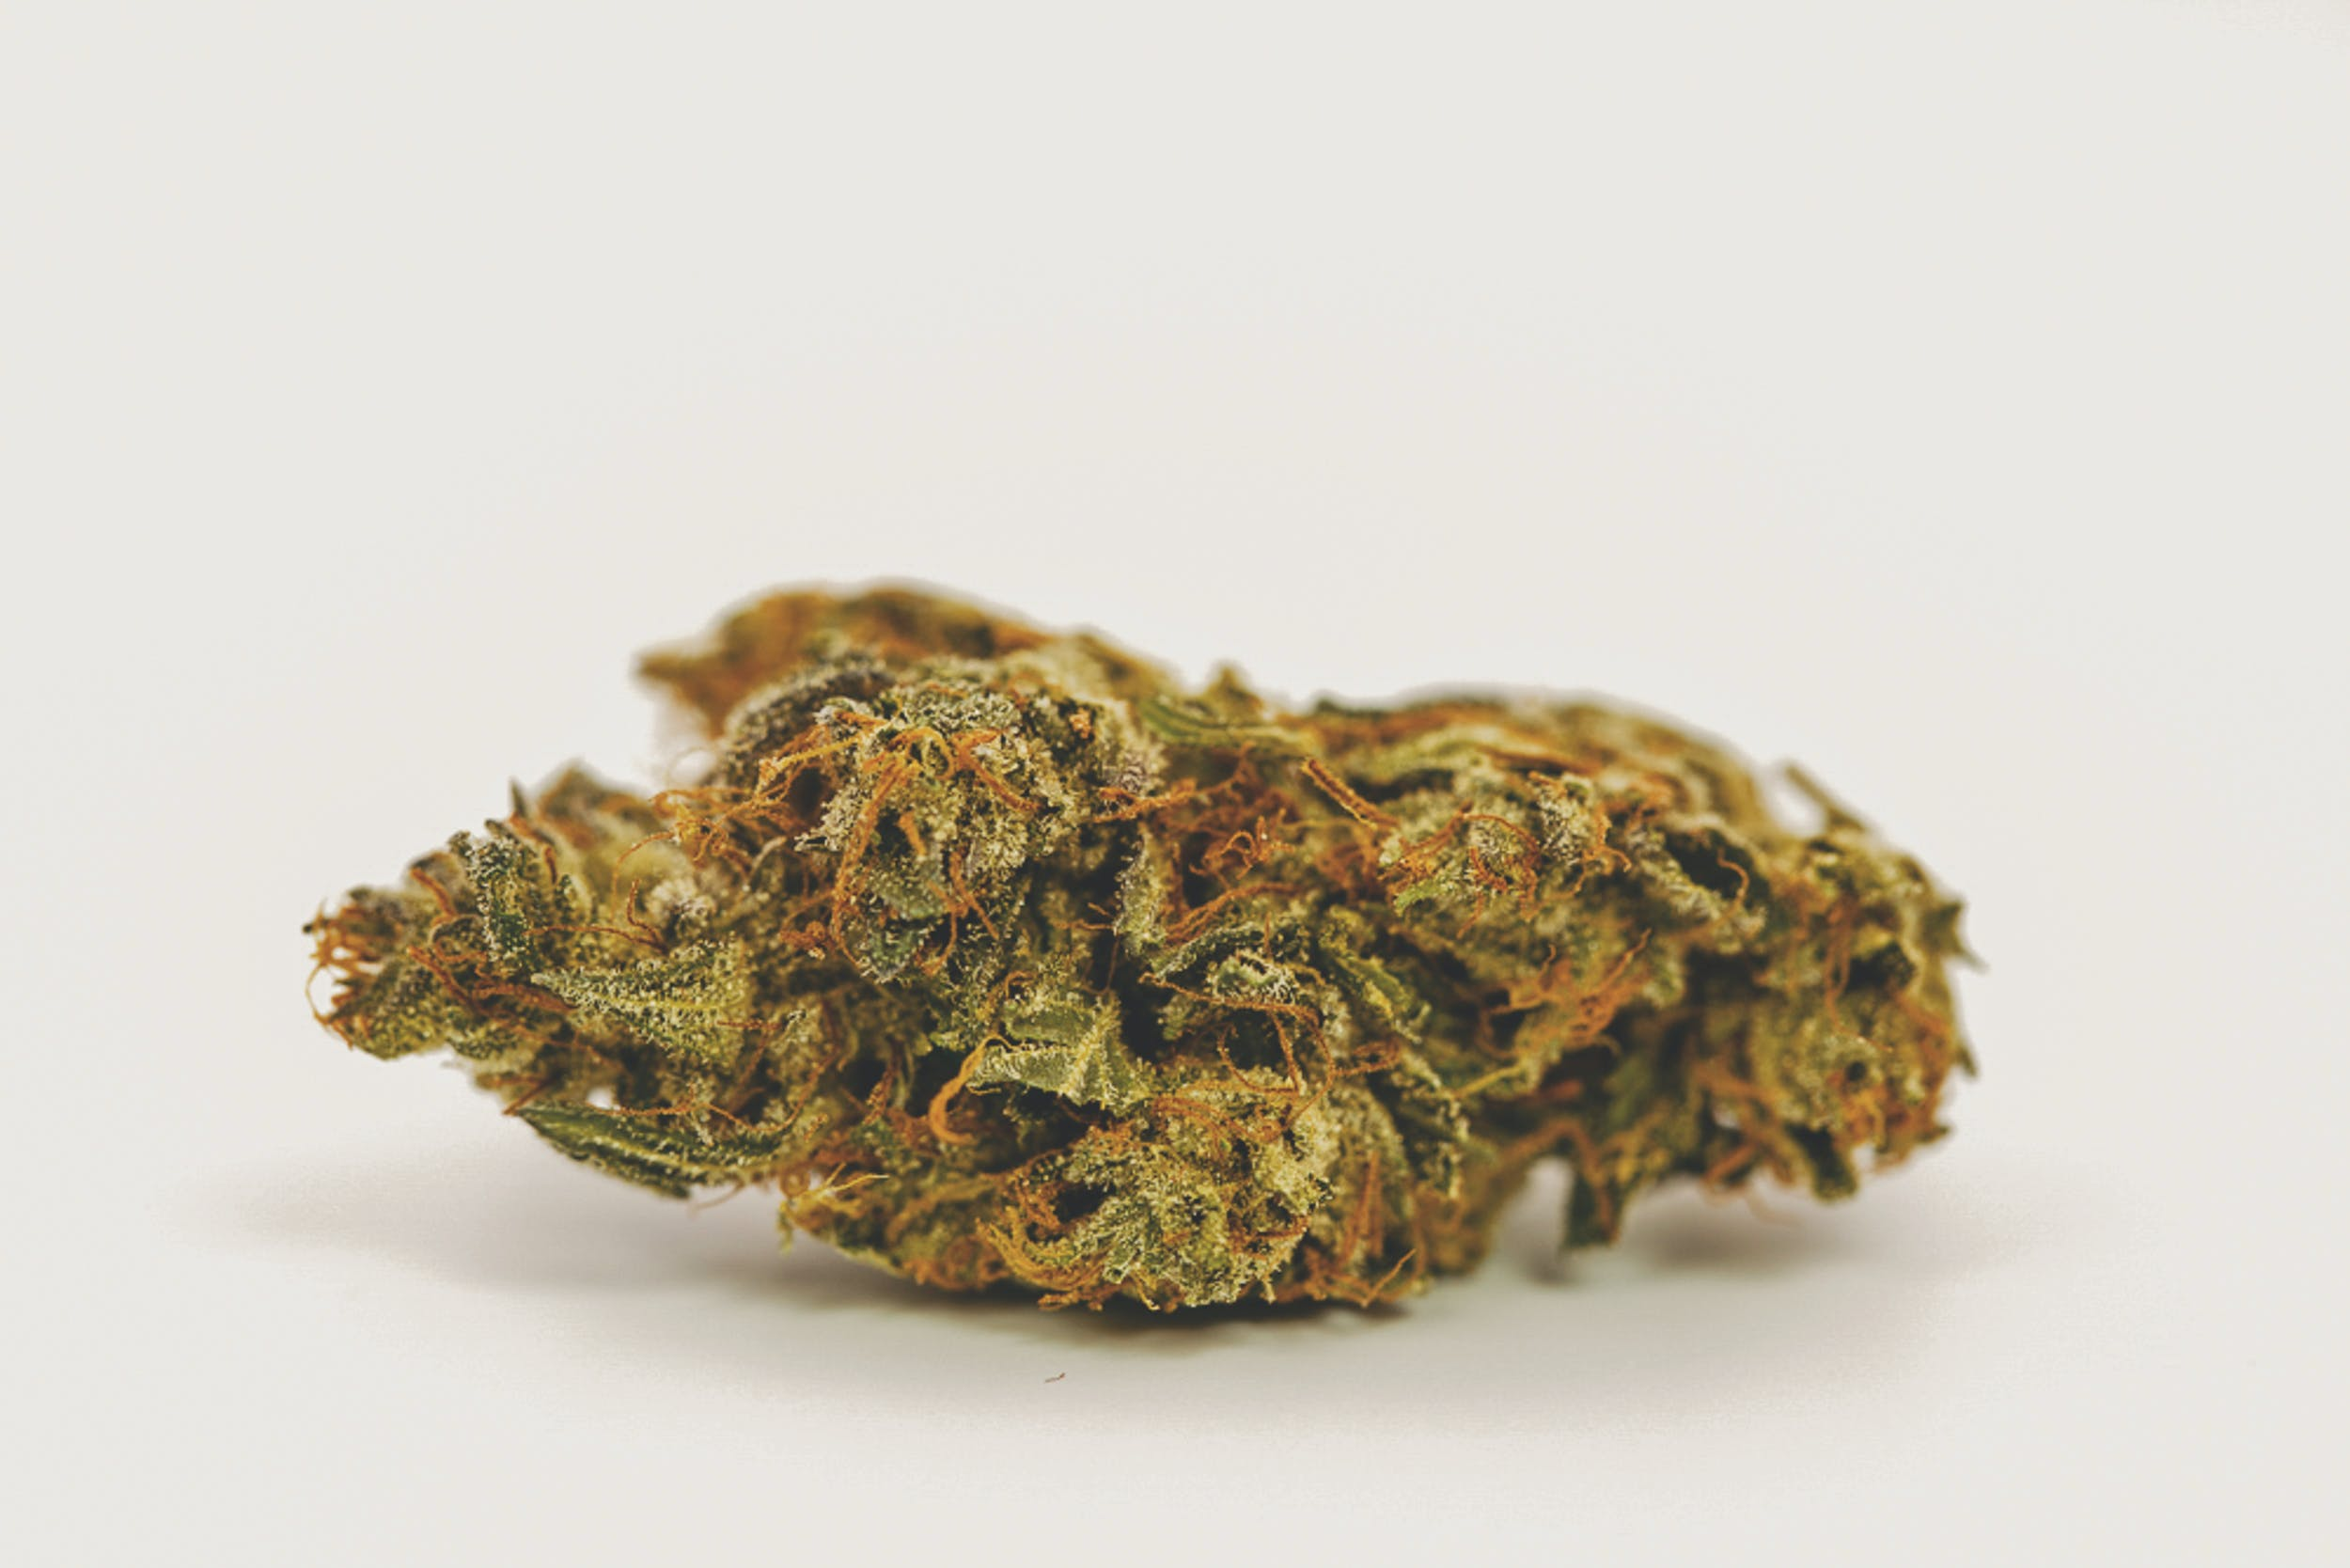 Best Kush Strains 6 These are the Best Kush Strains on the Planet